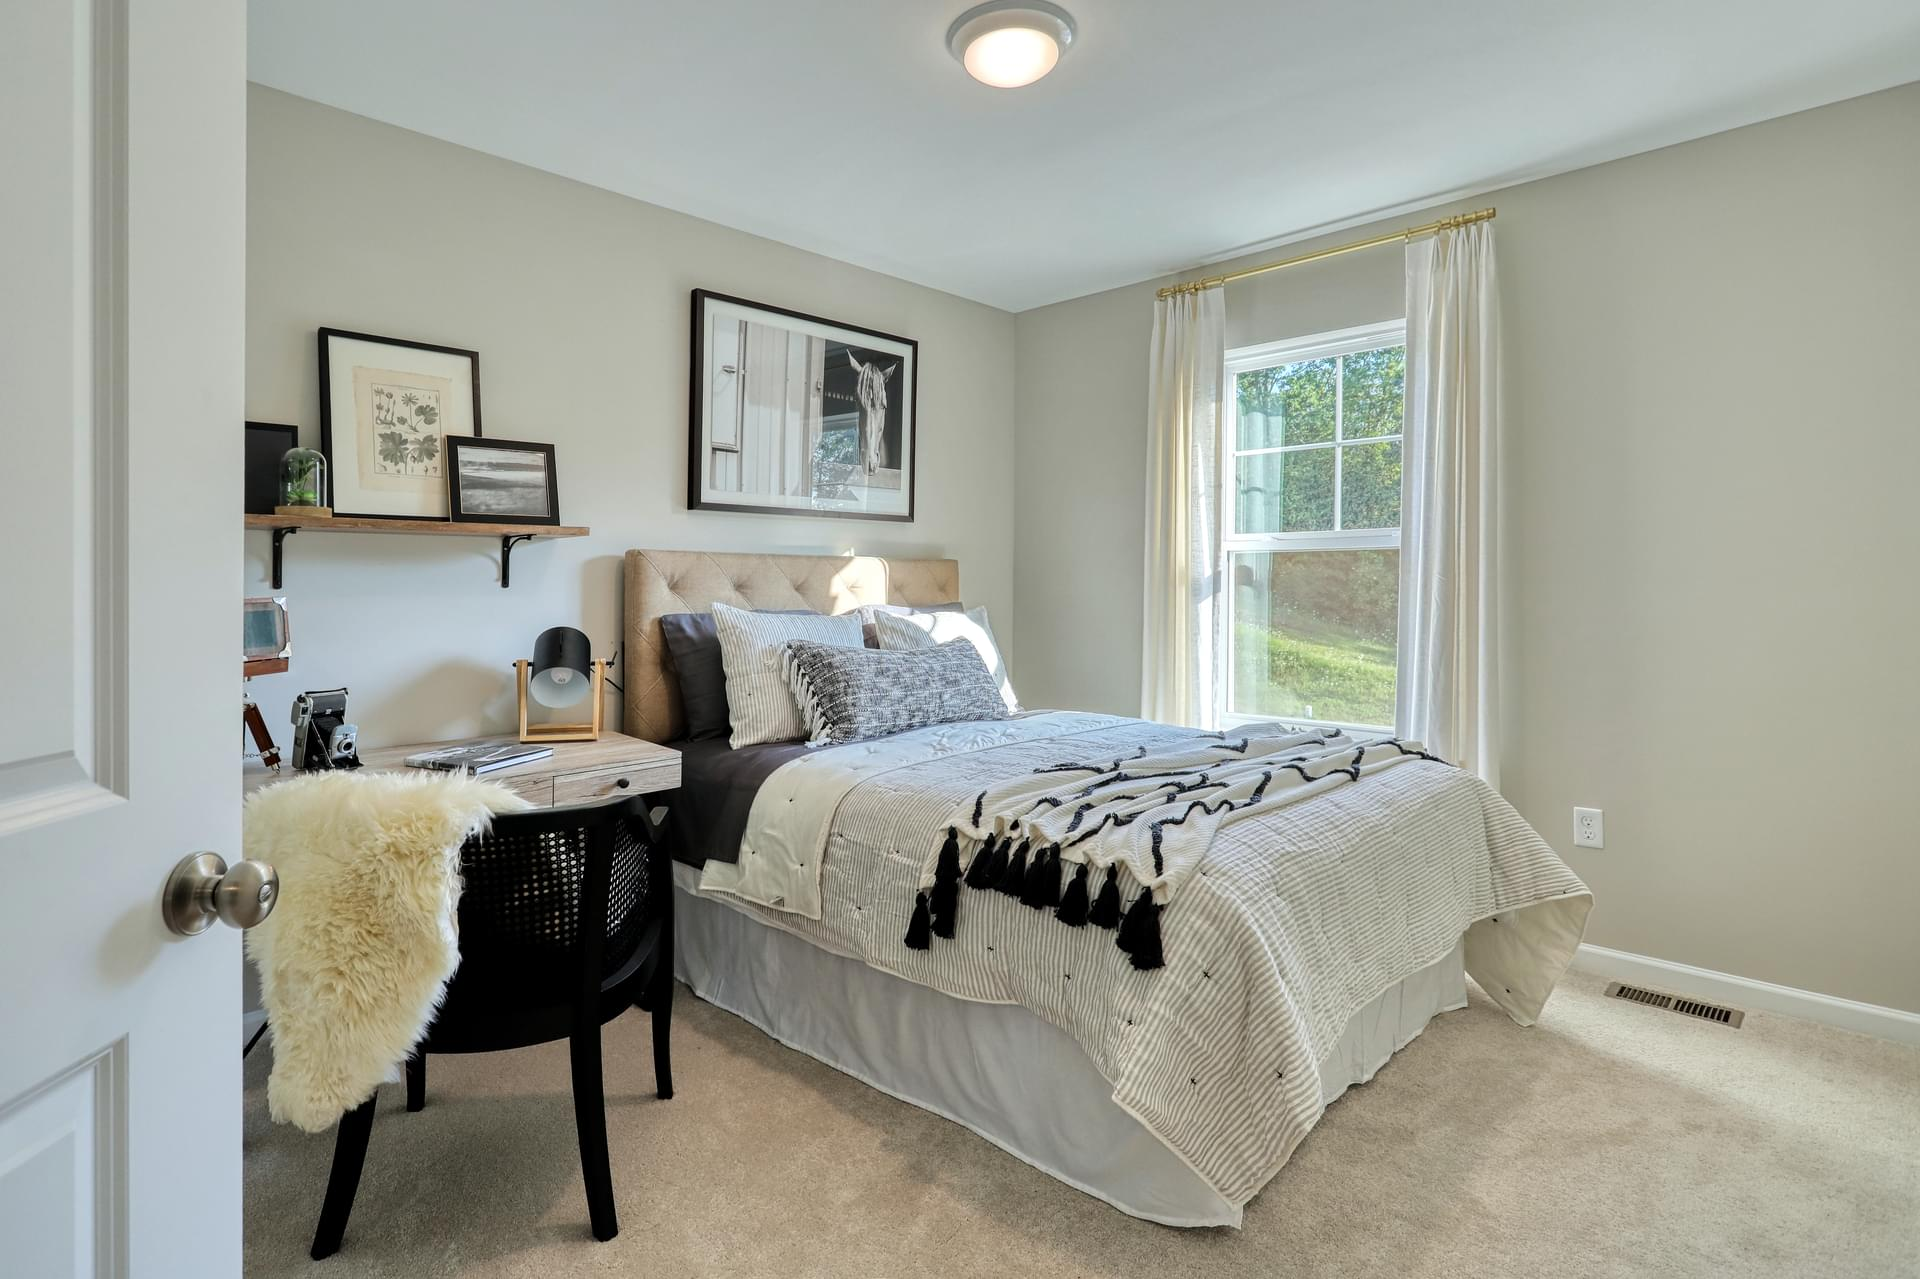 Burberry New Home in East Berlin, PA